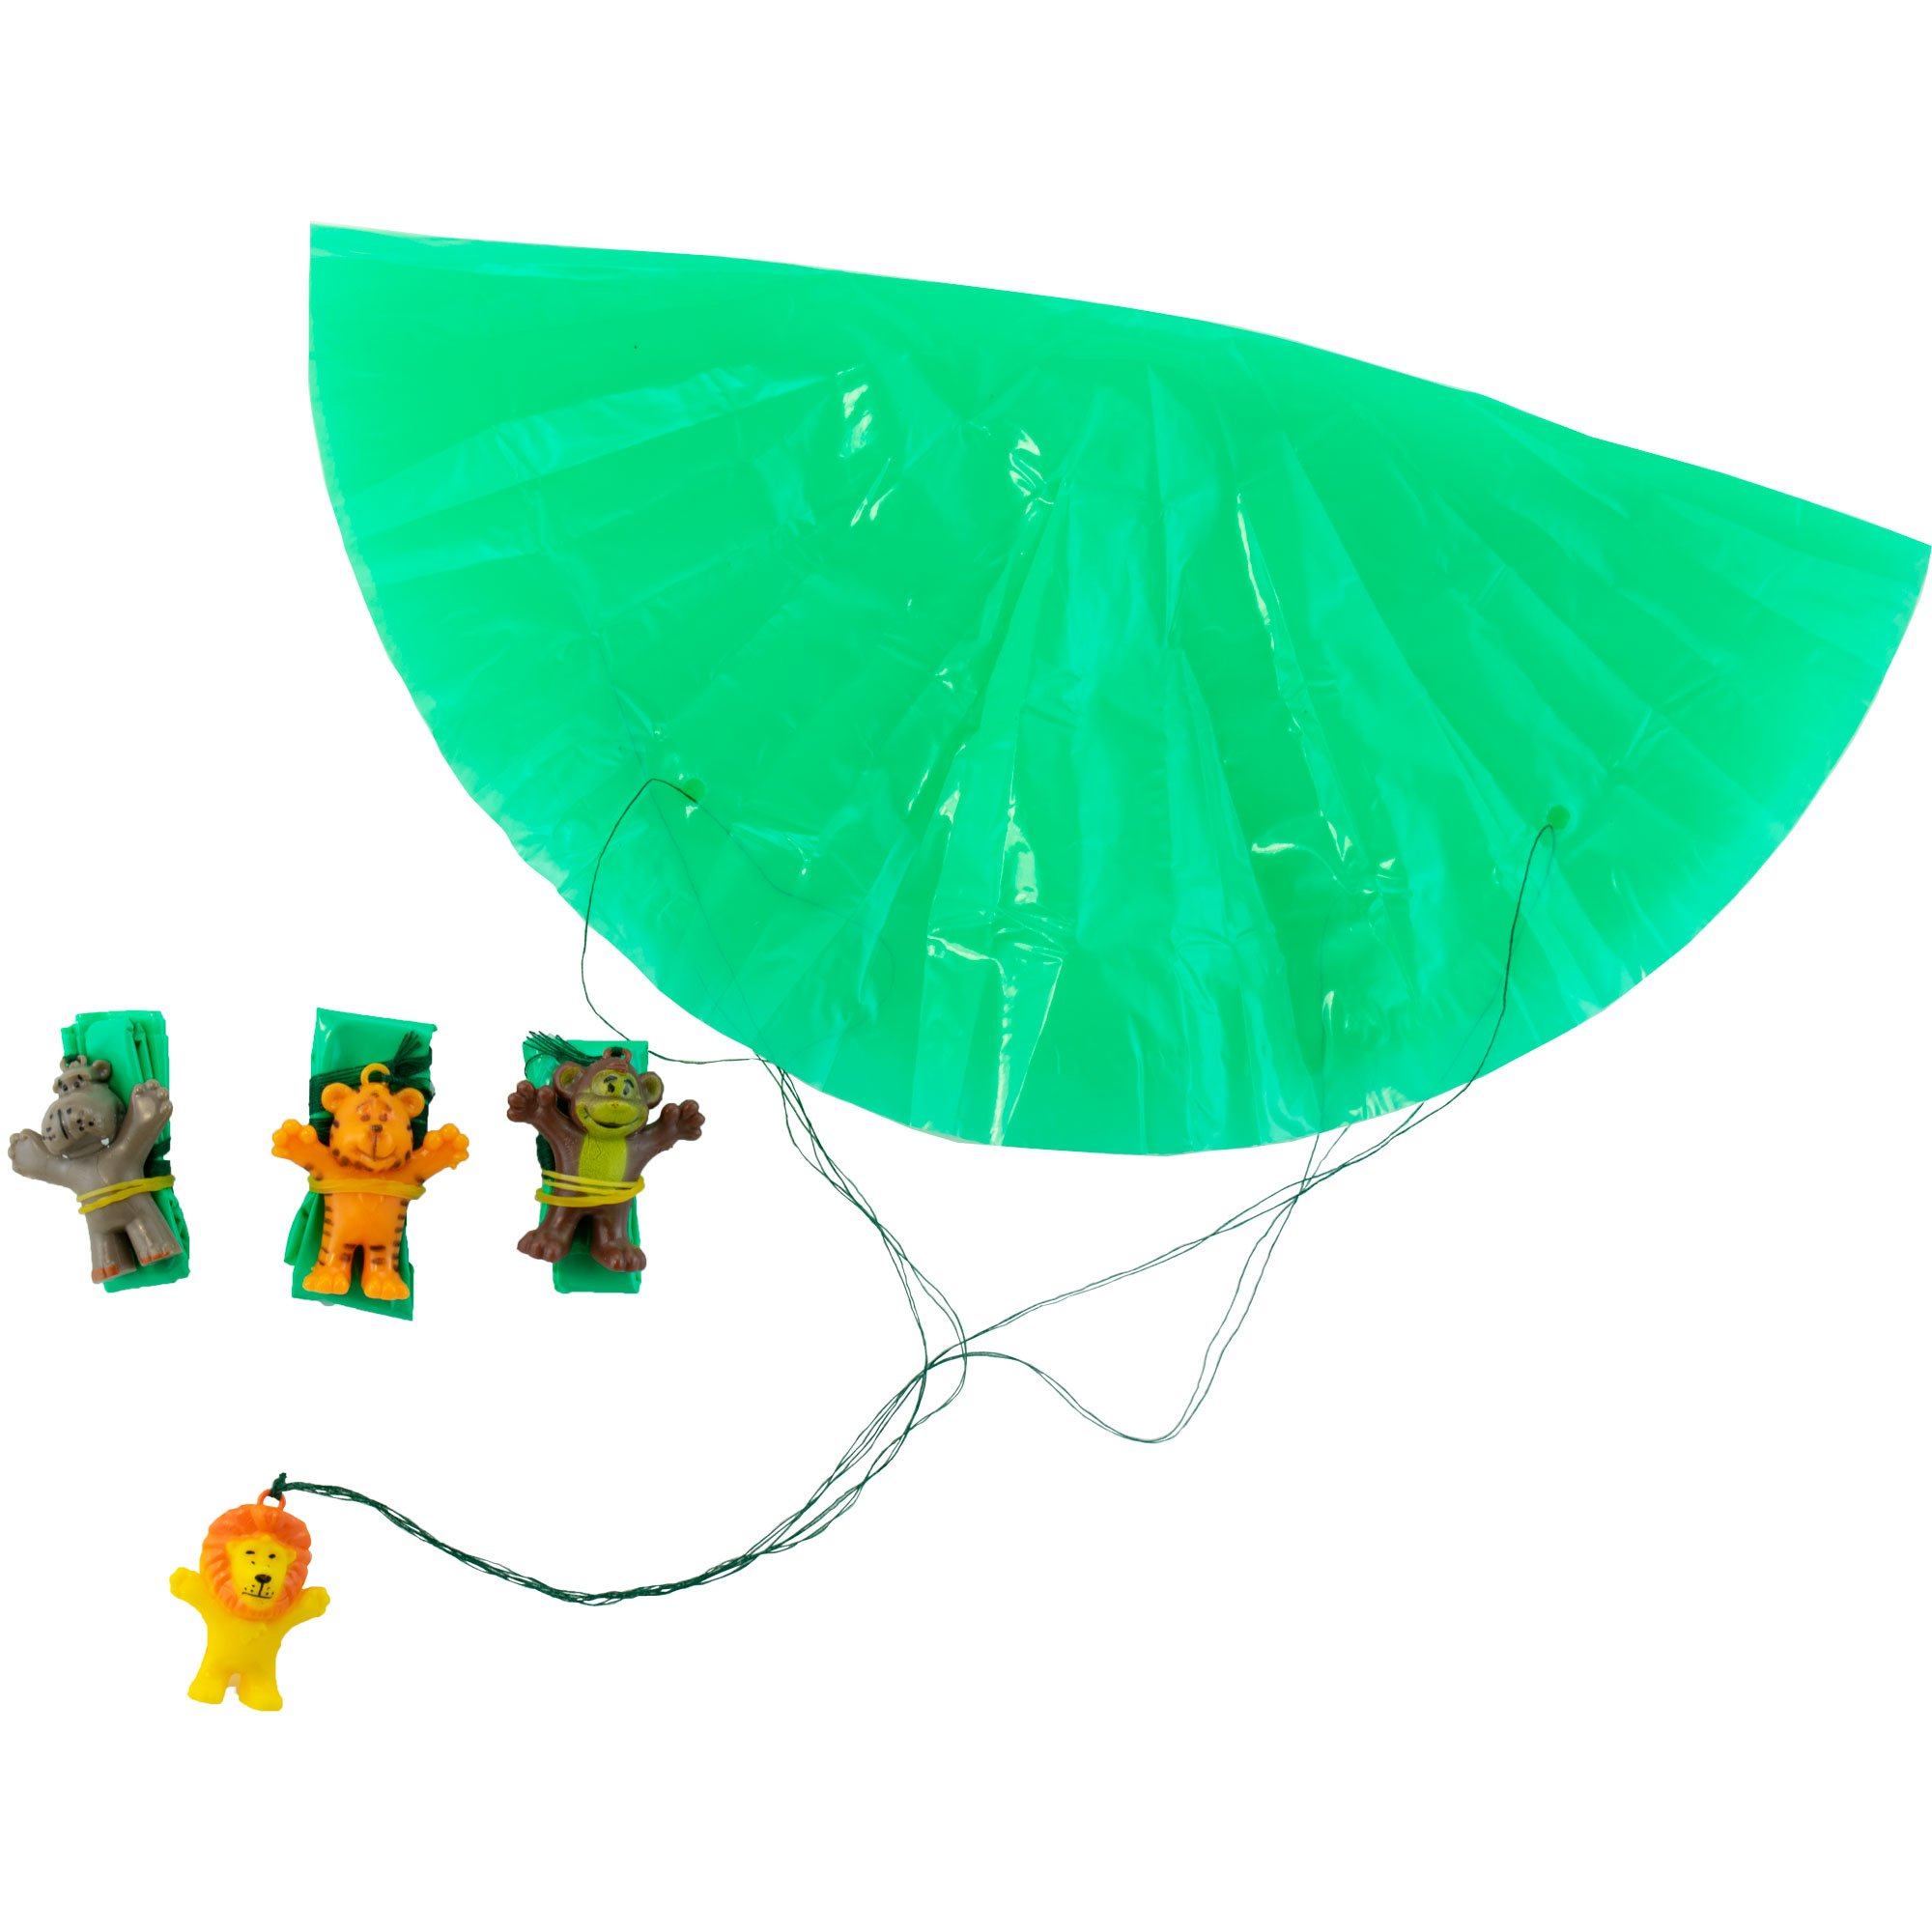 Giggletime Toy Co. Safari Animal Parachutist Assortment - (48) Pieces - for Kids, Boys and Girls, Party Favors, Pinata Stuffers, Children's Gift Bags, Carnival Prizes by Giggletime Toy Co. (Image #2)